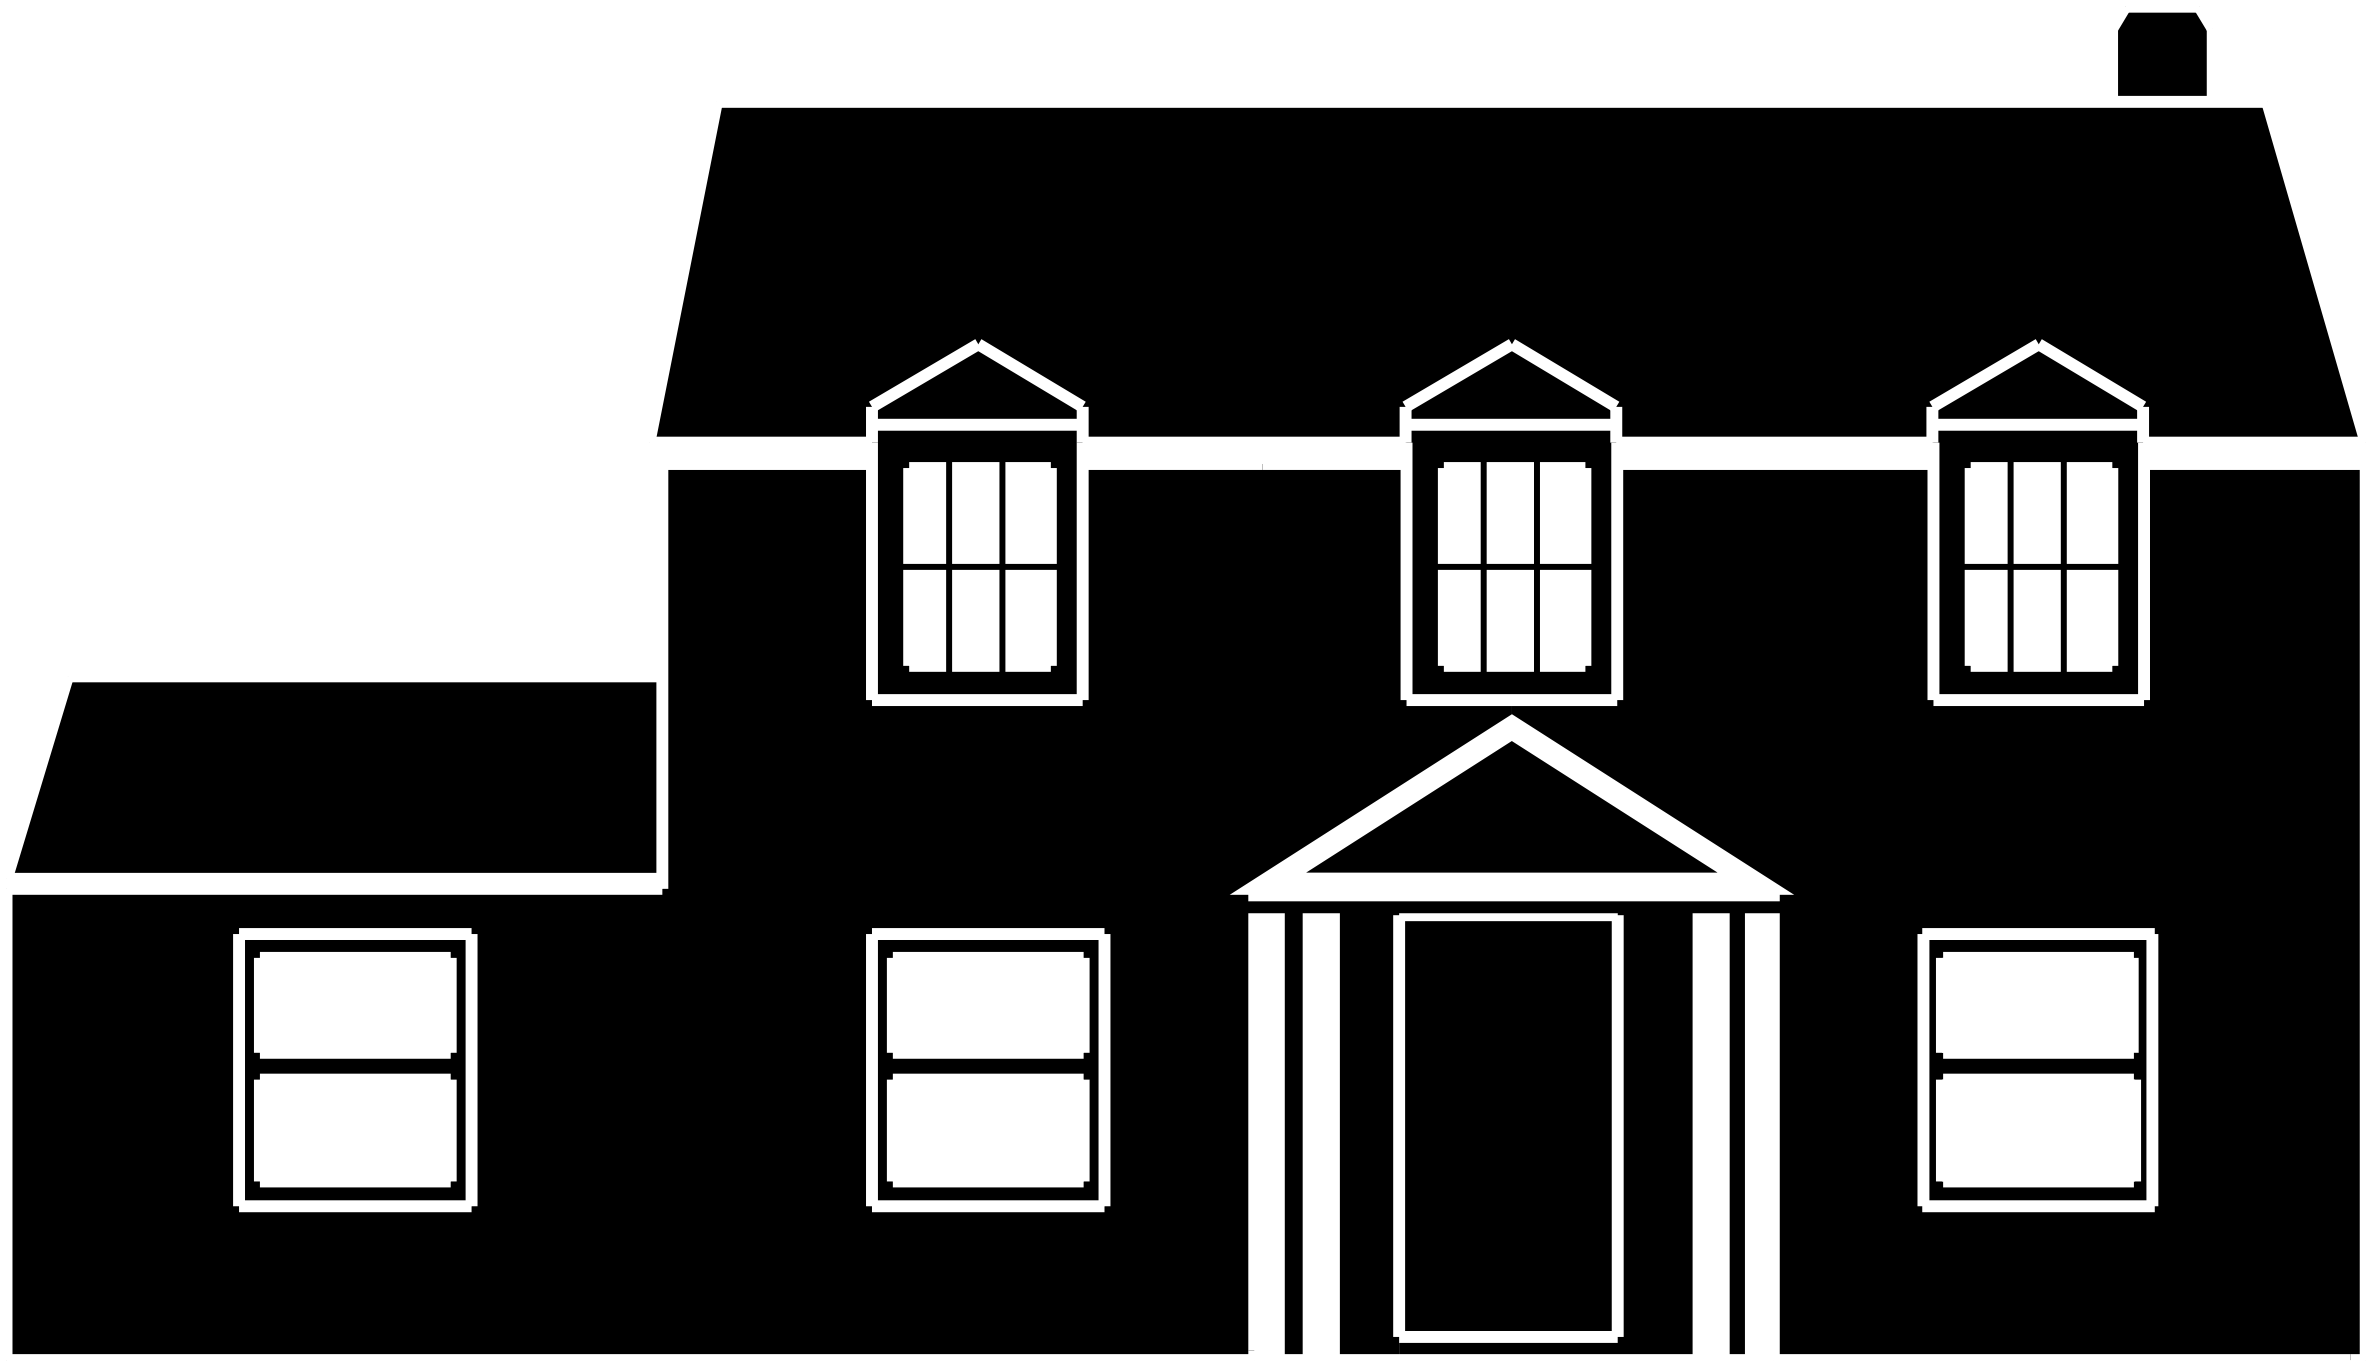 Home clipart rat. Black and white house